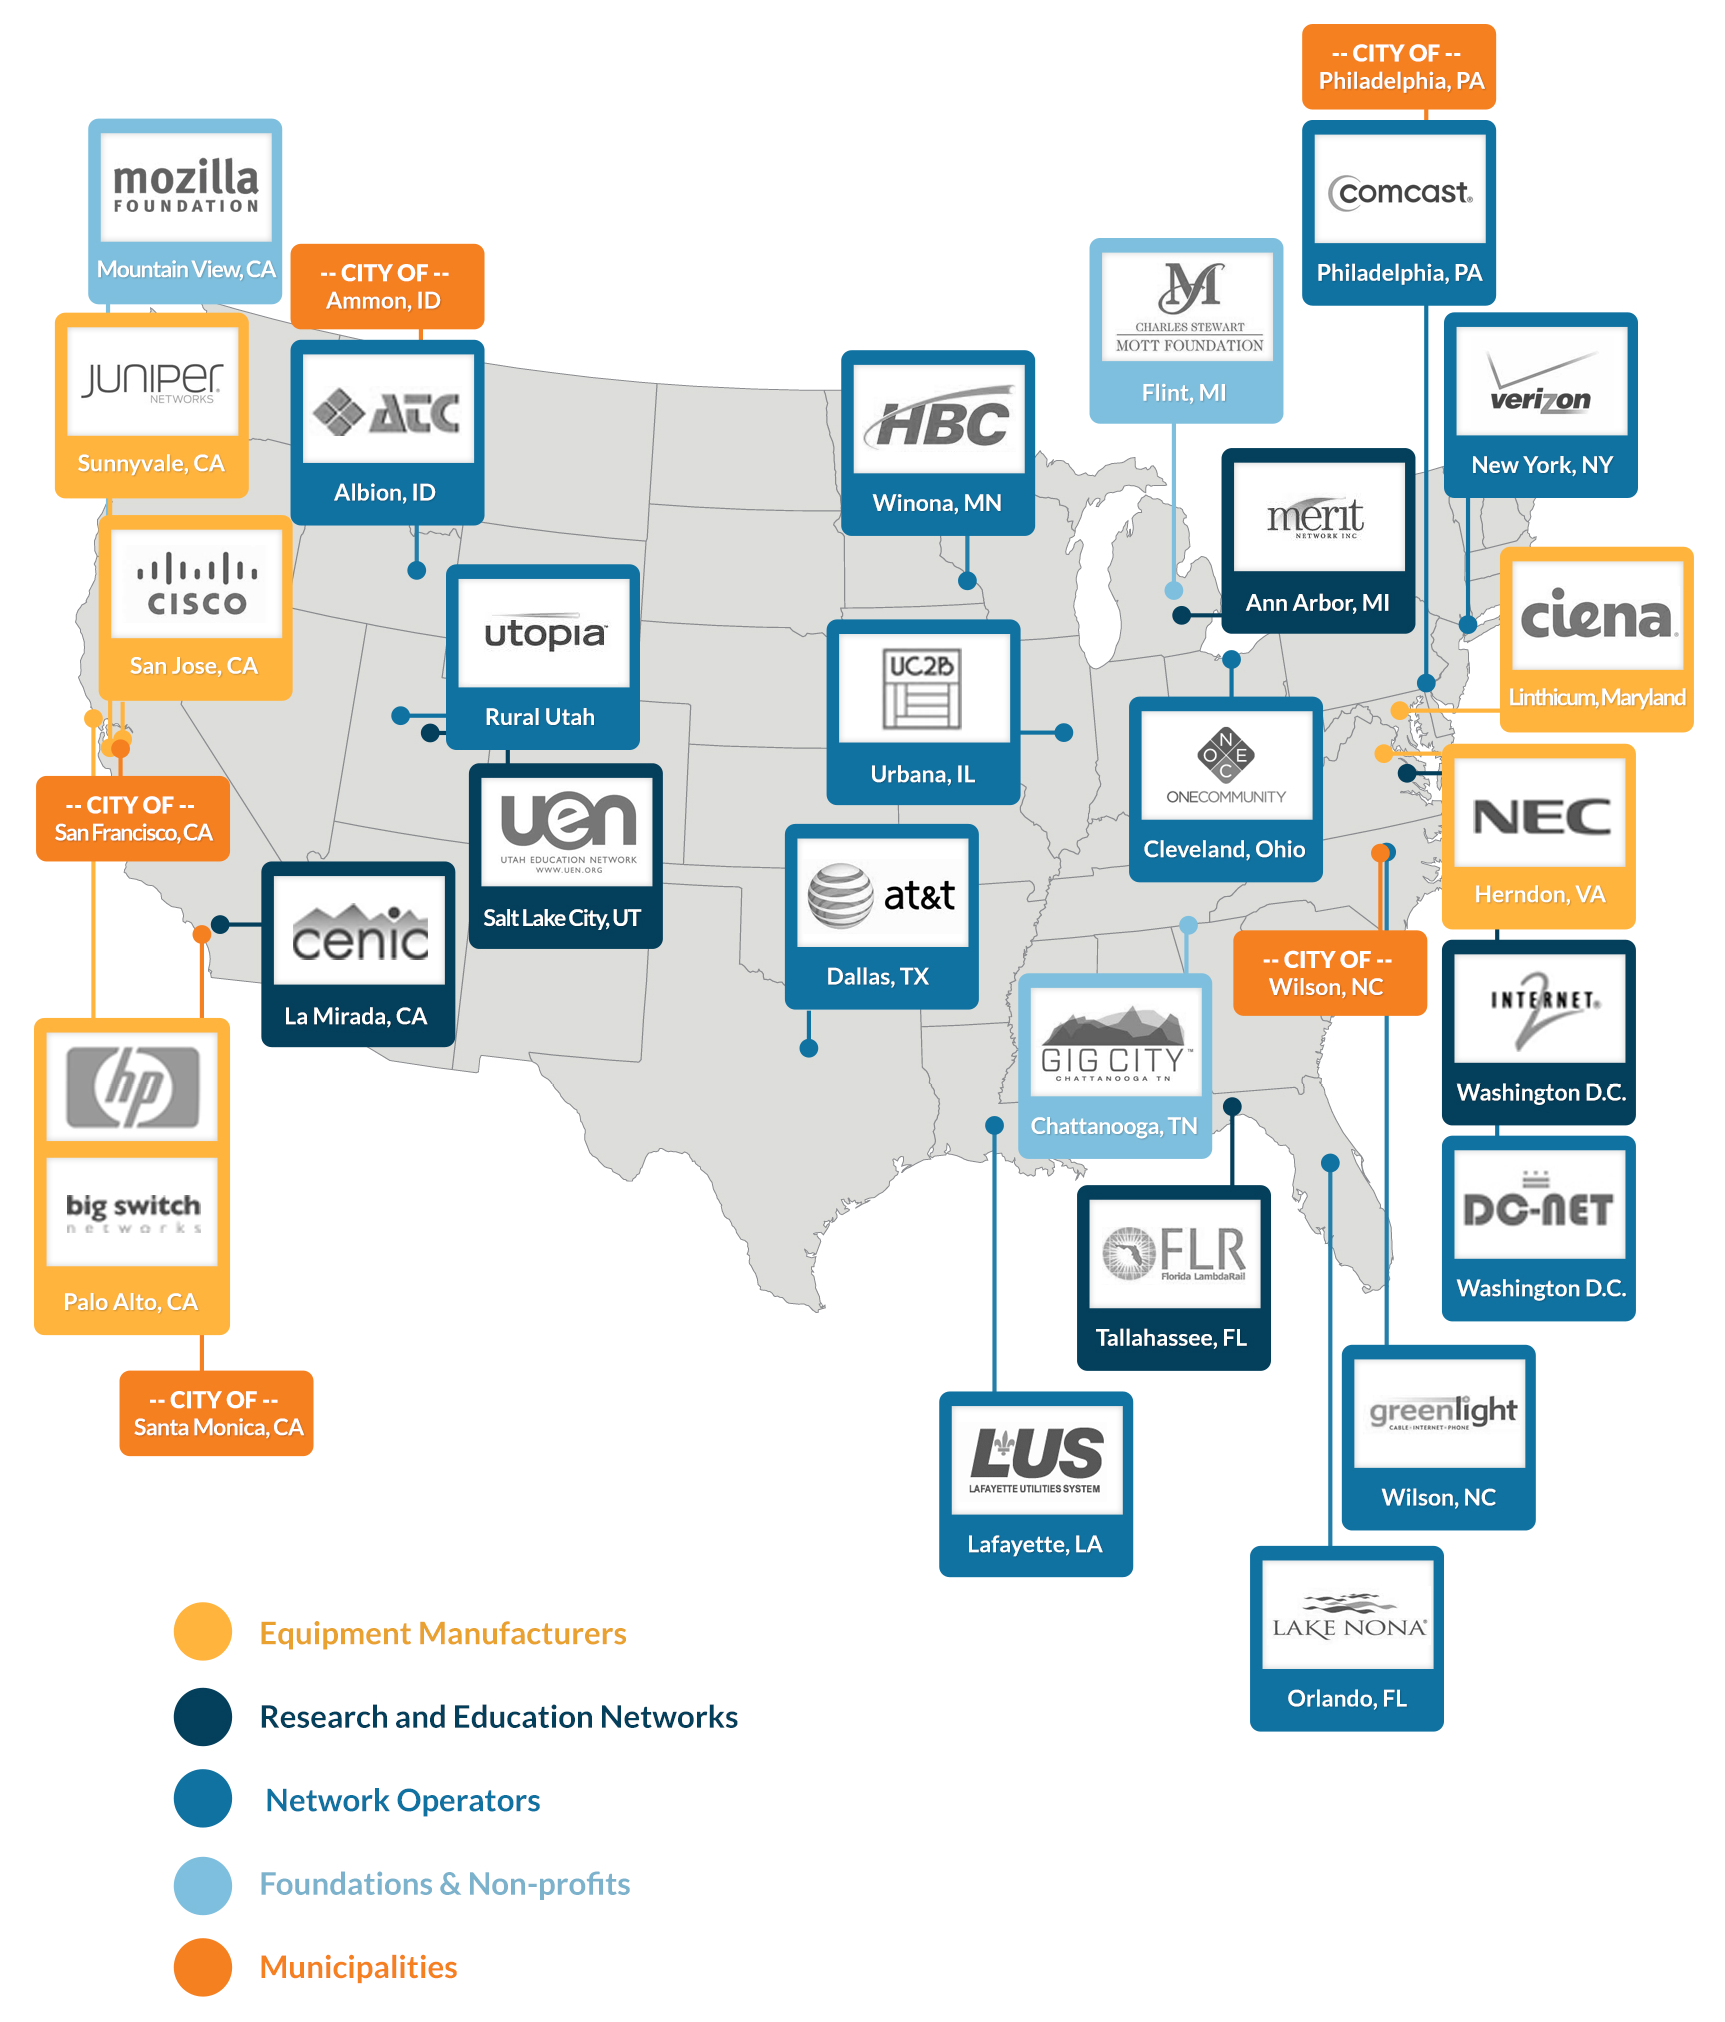 Founding sponsors and partners of US Ignite [image courtesy US Ignite].